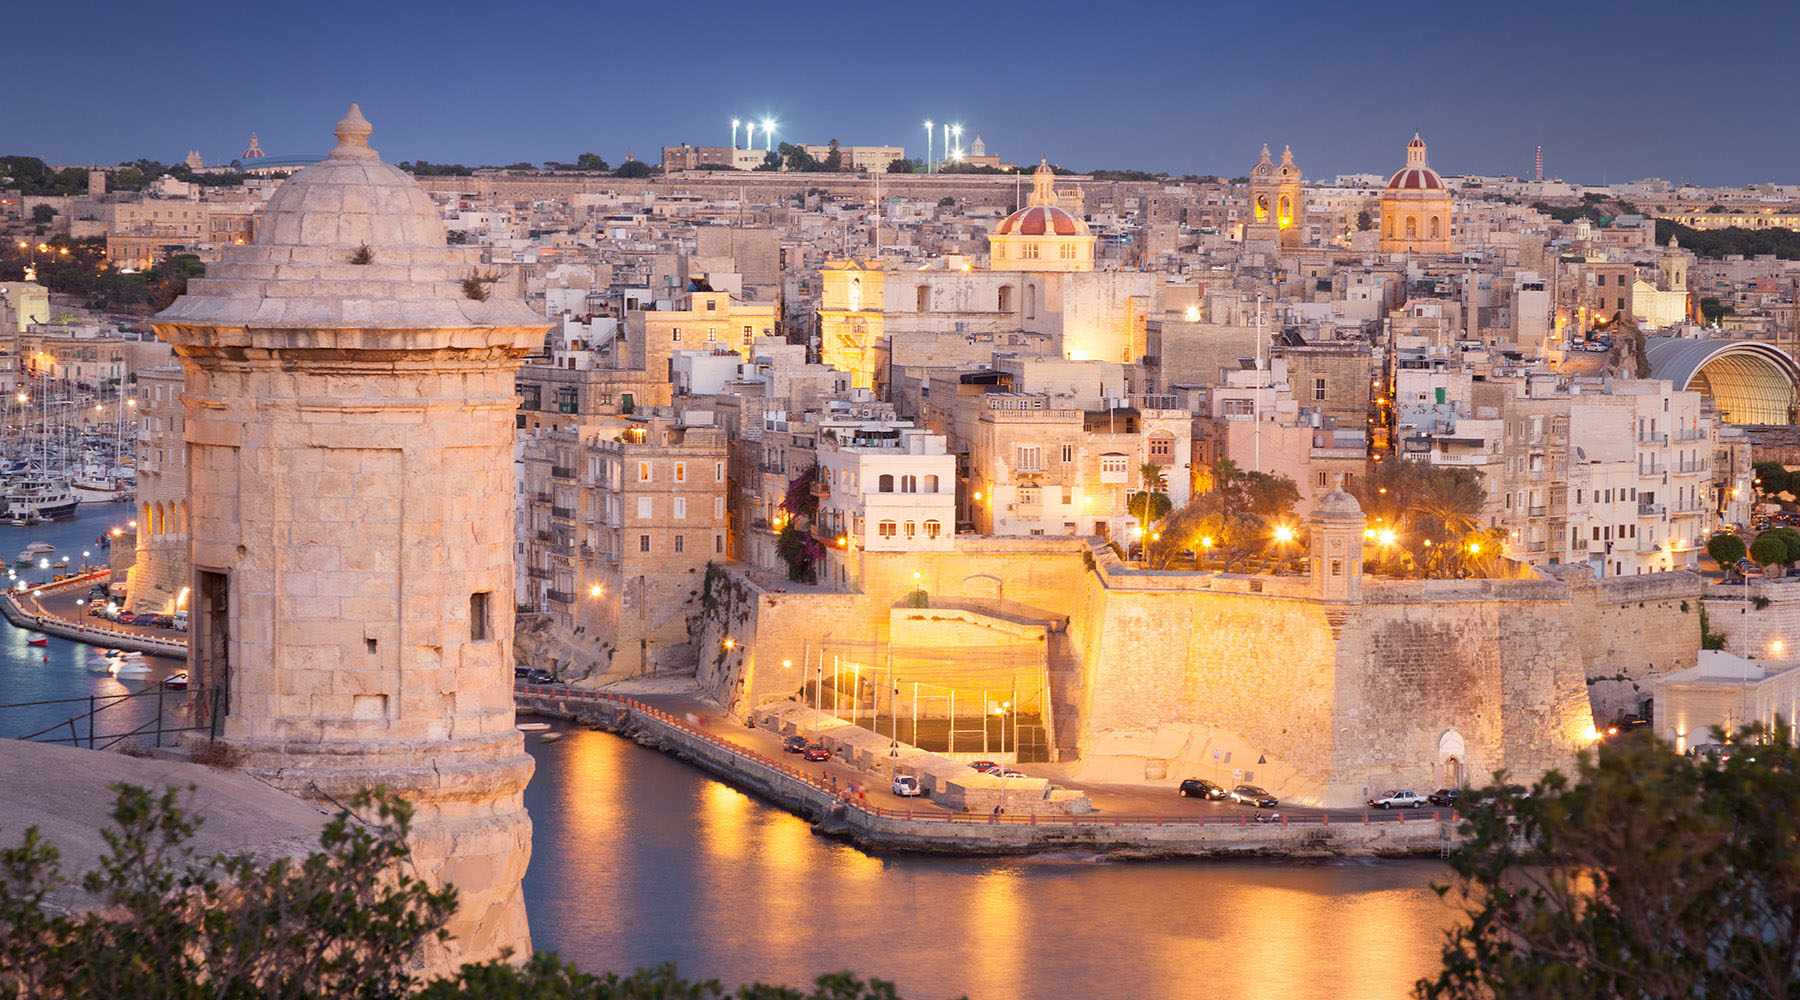 8-NIGHT GREECE, MALTA & ITALY VOYAGE